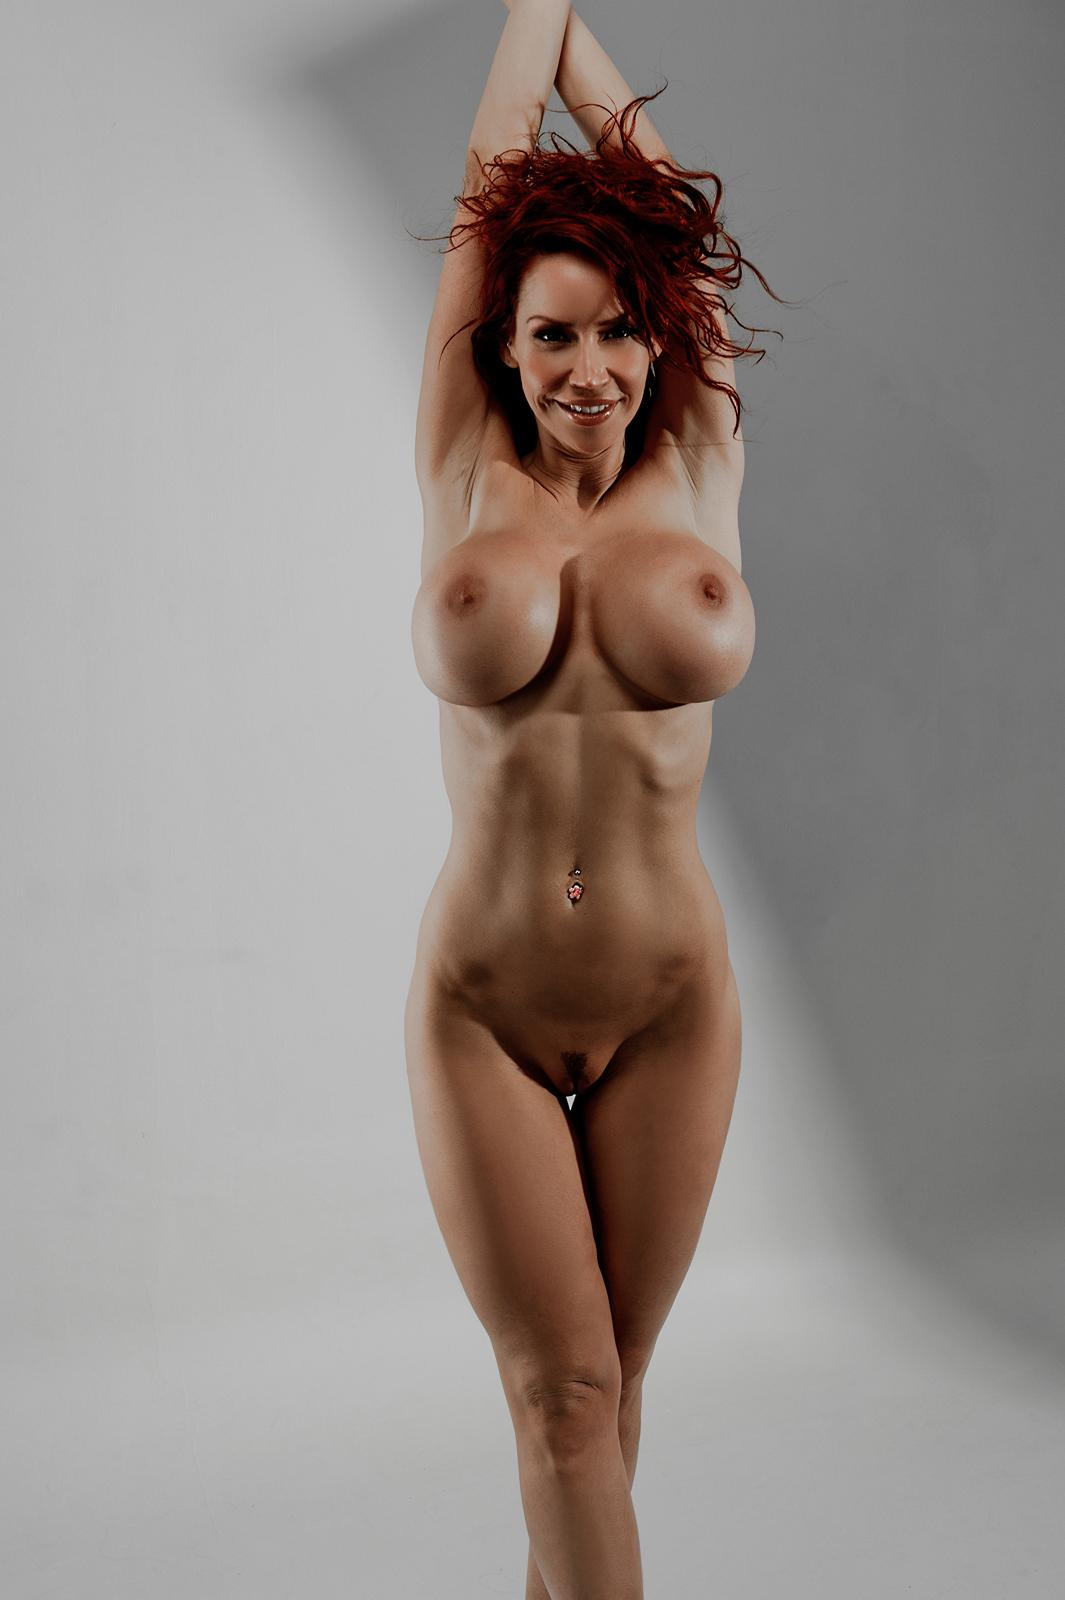 Everything Bianca Beauchamp